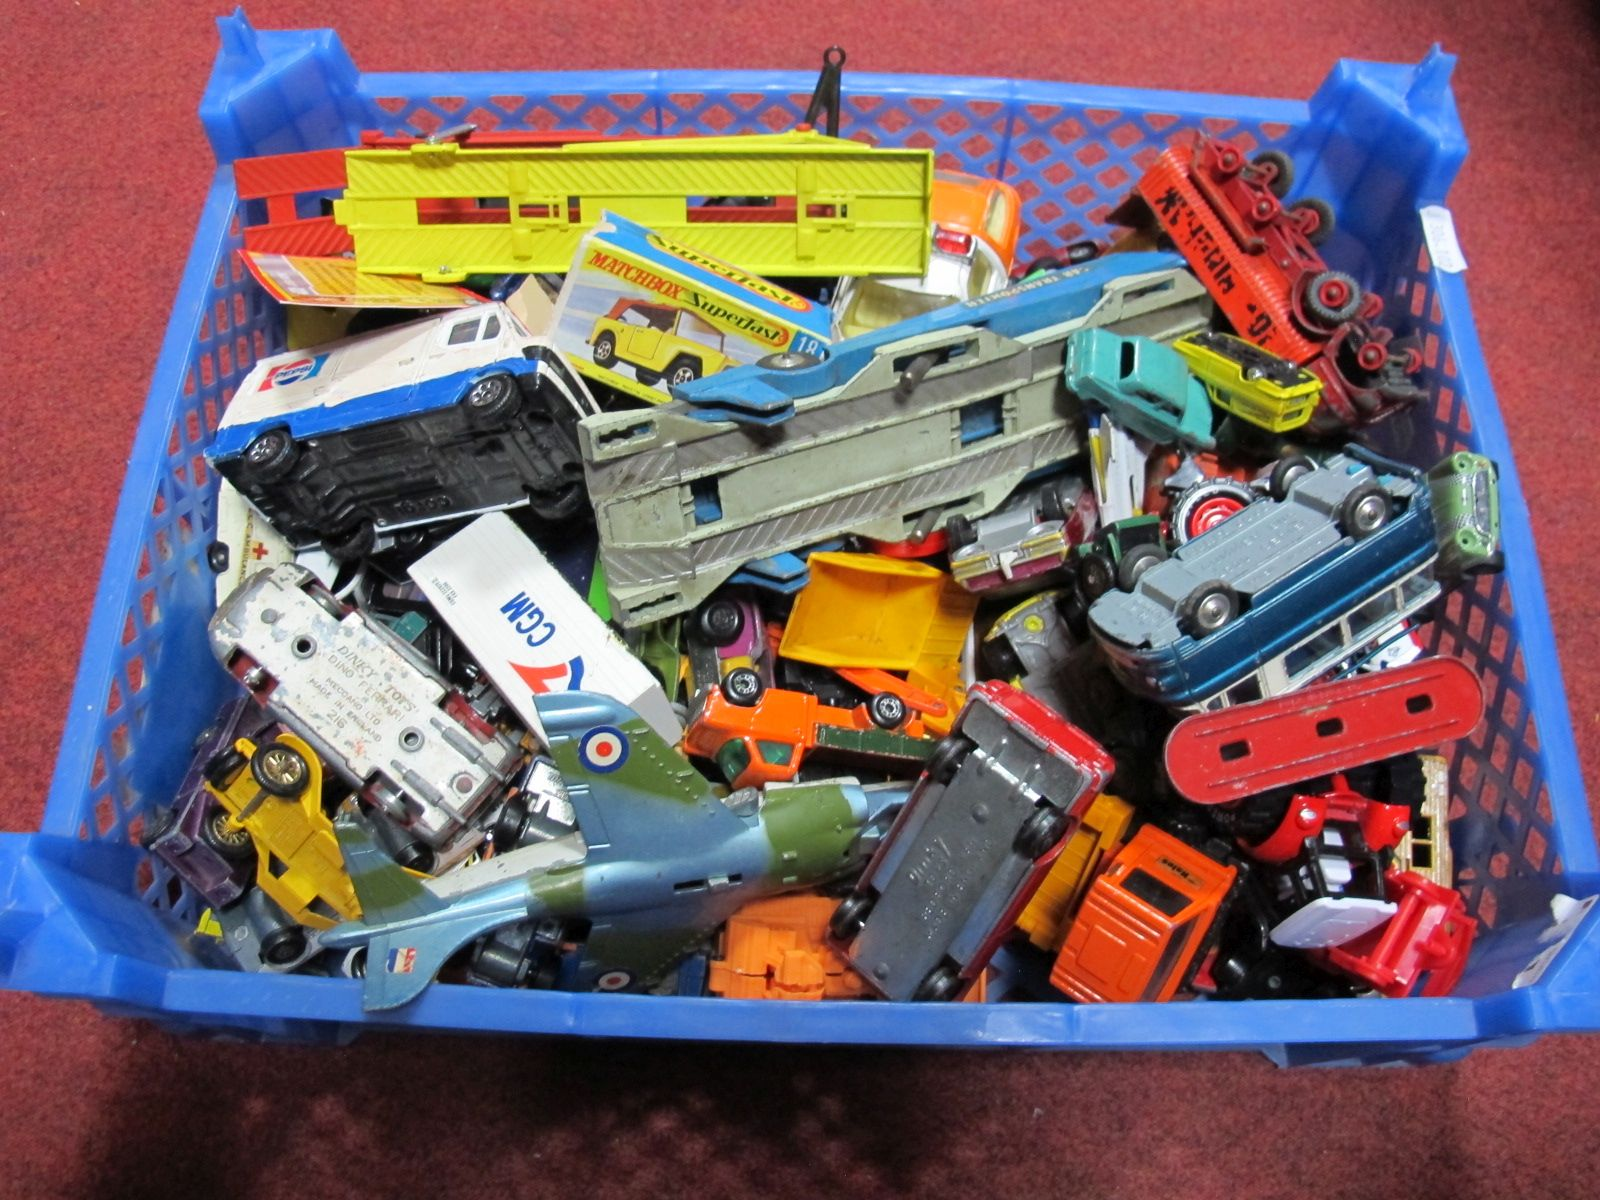 Lot 468 - A Quantity of Diecast Vehicles by Dinky, Corgi and Others, playworn.